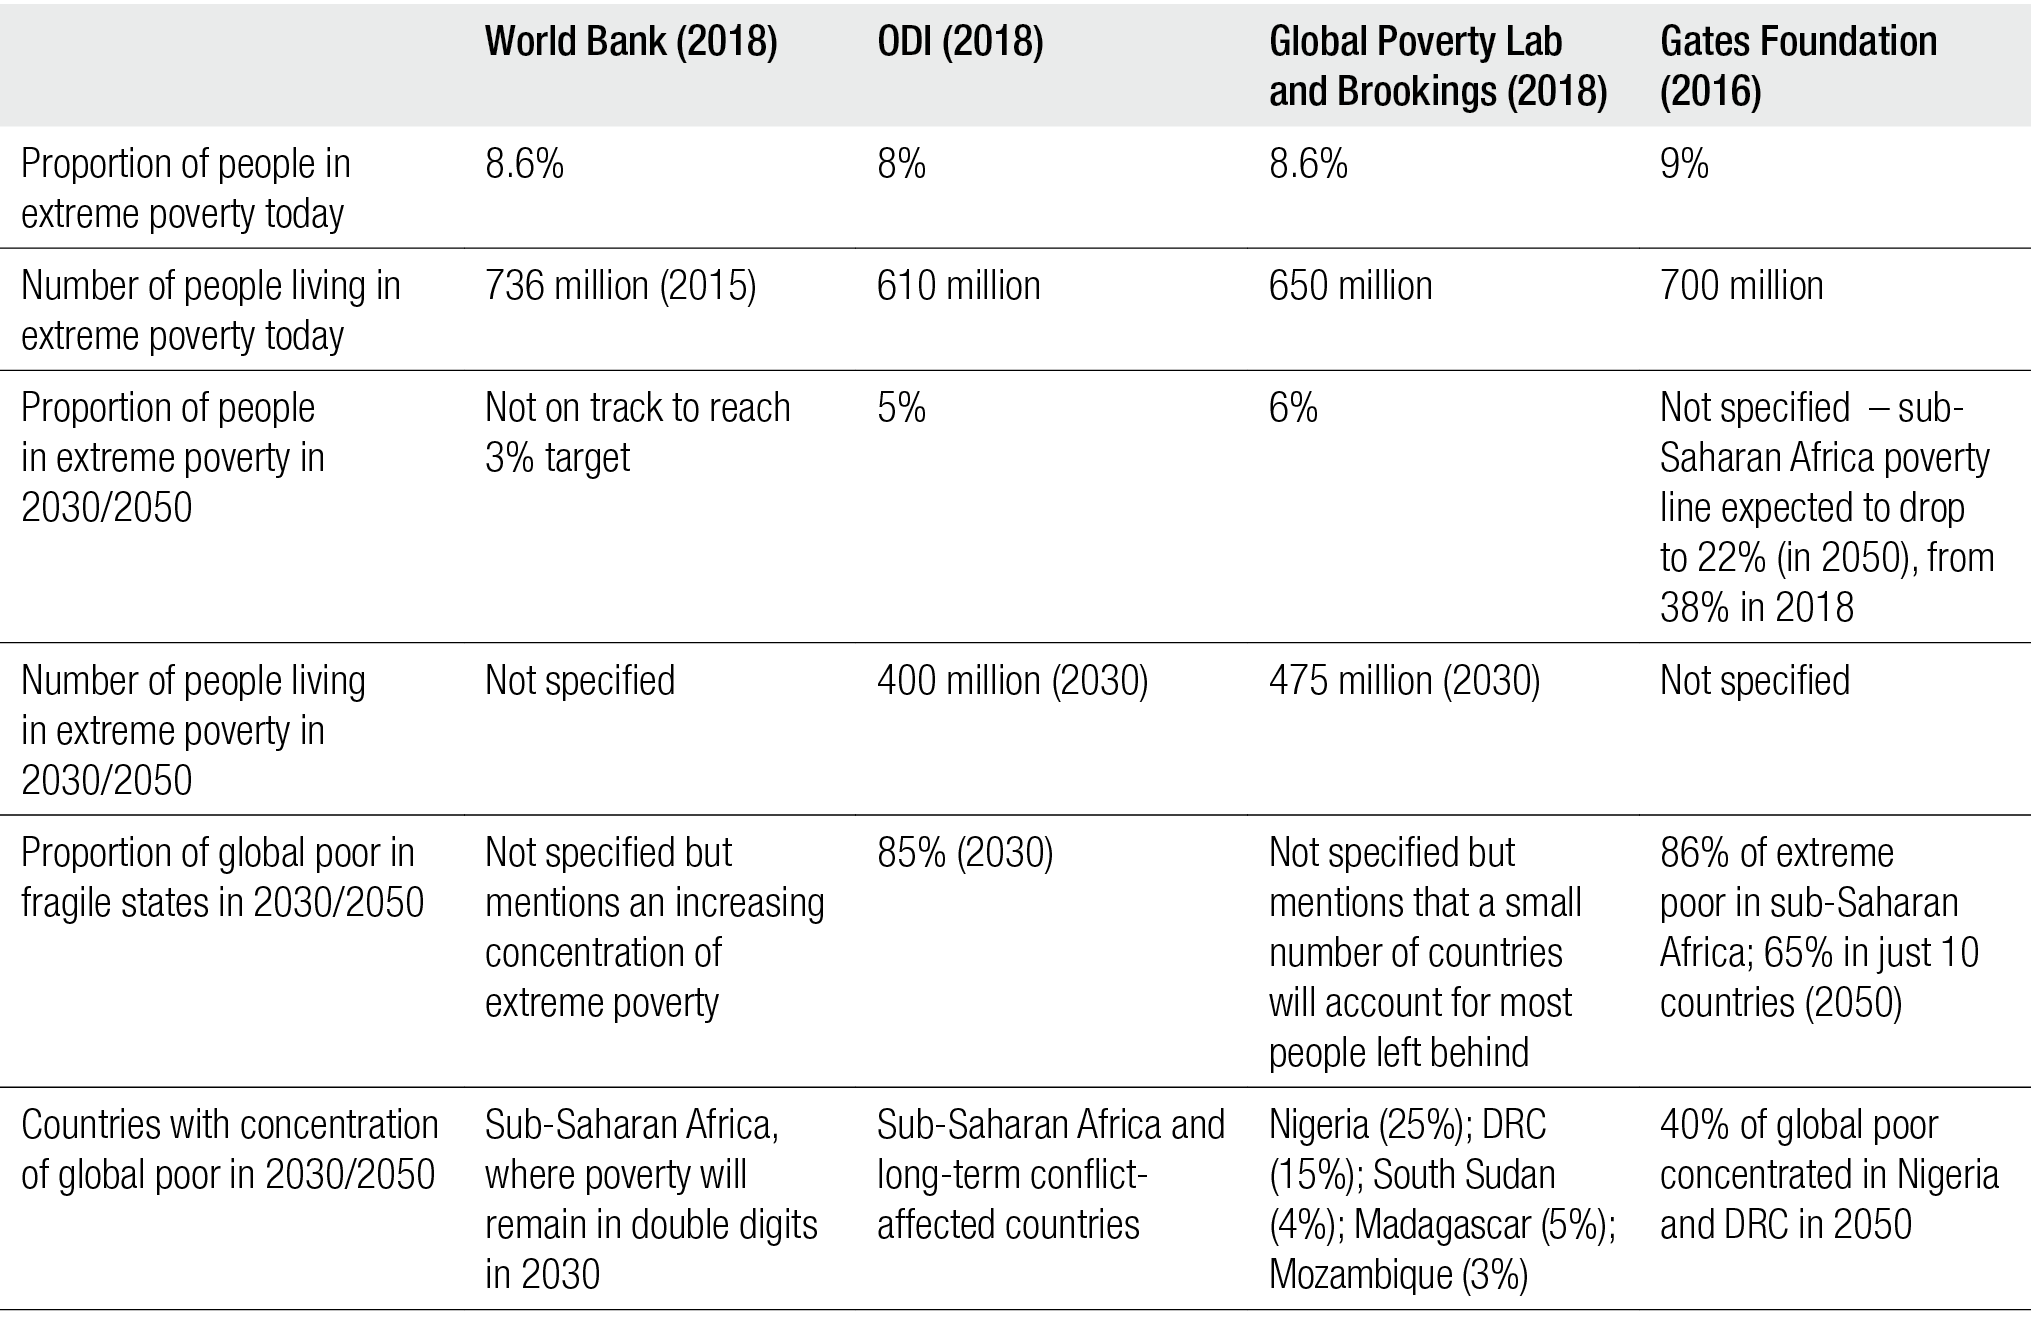 poverty_projection_figures_odi.png